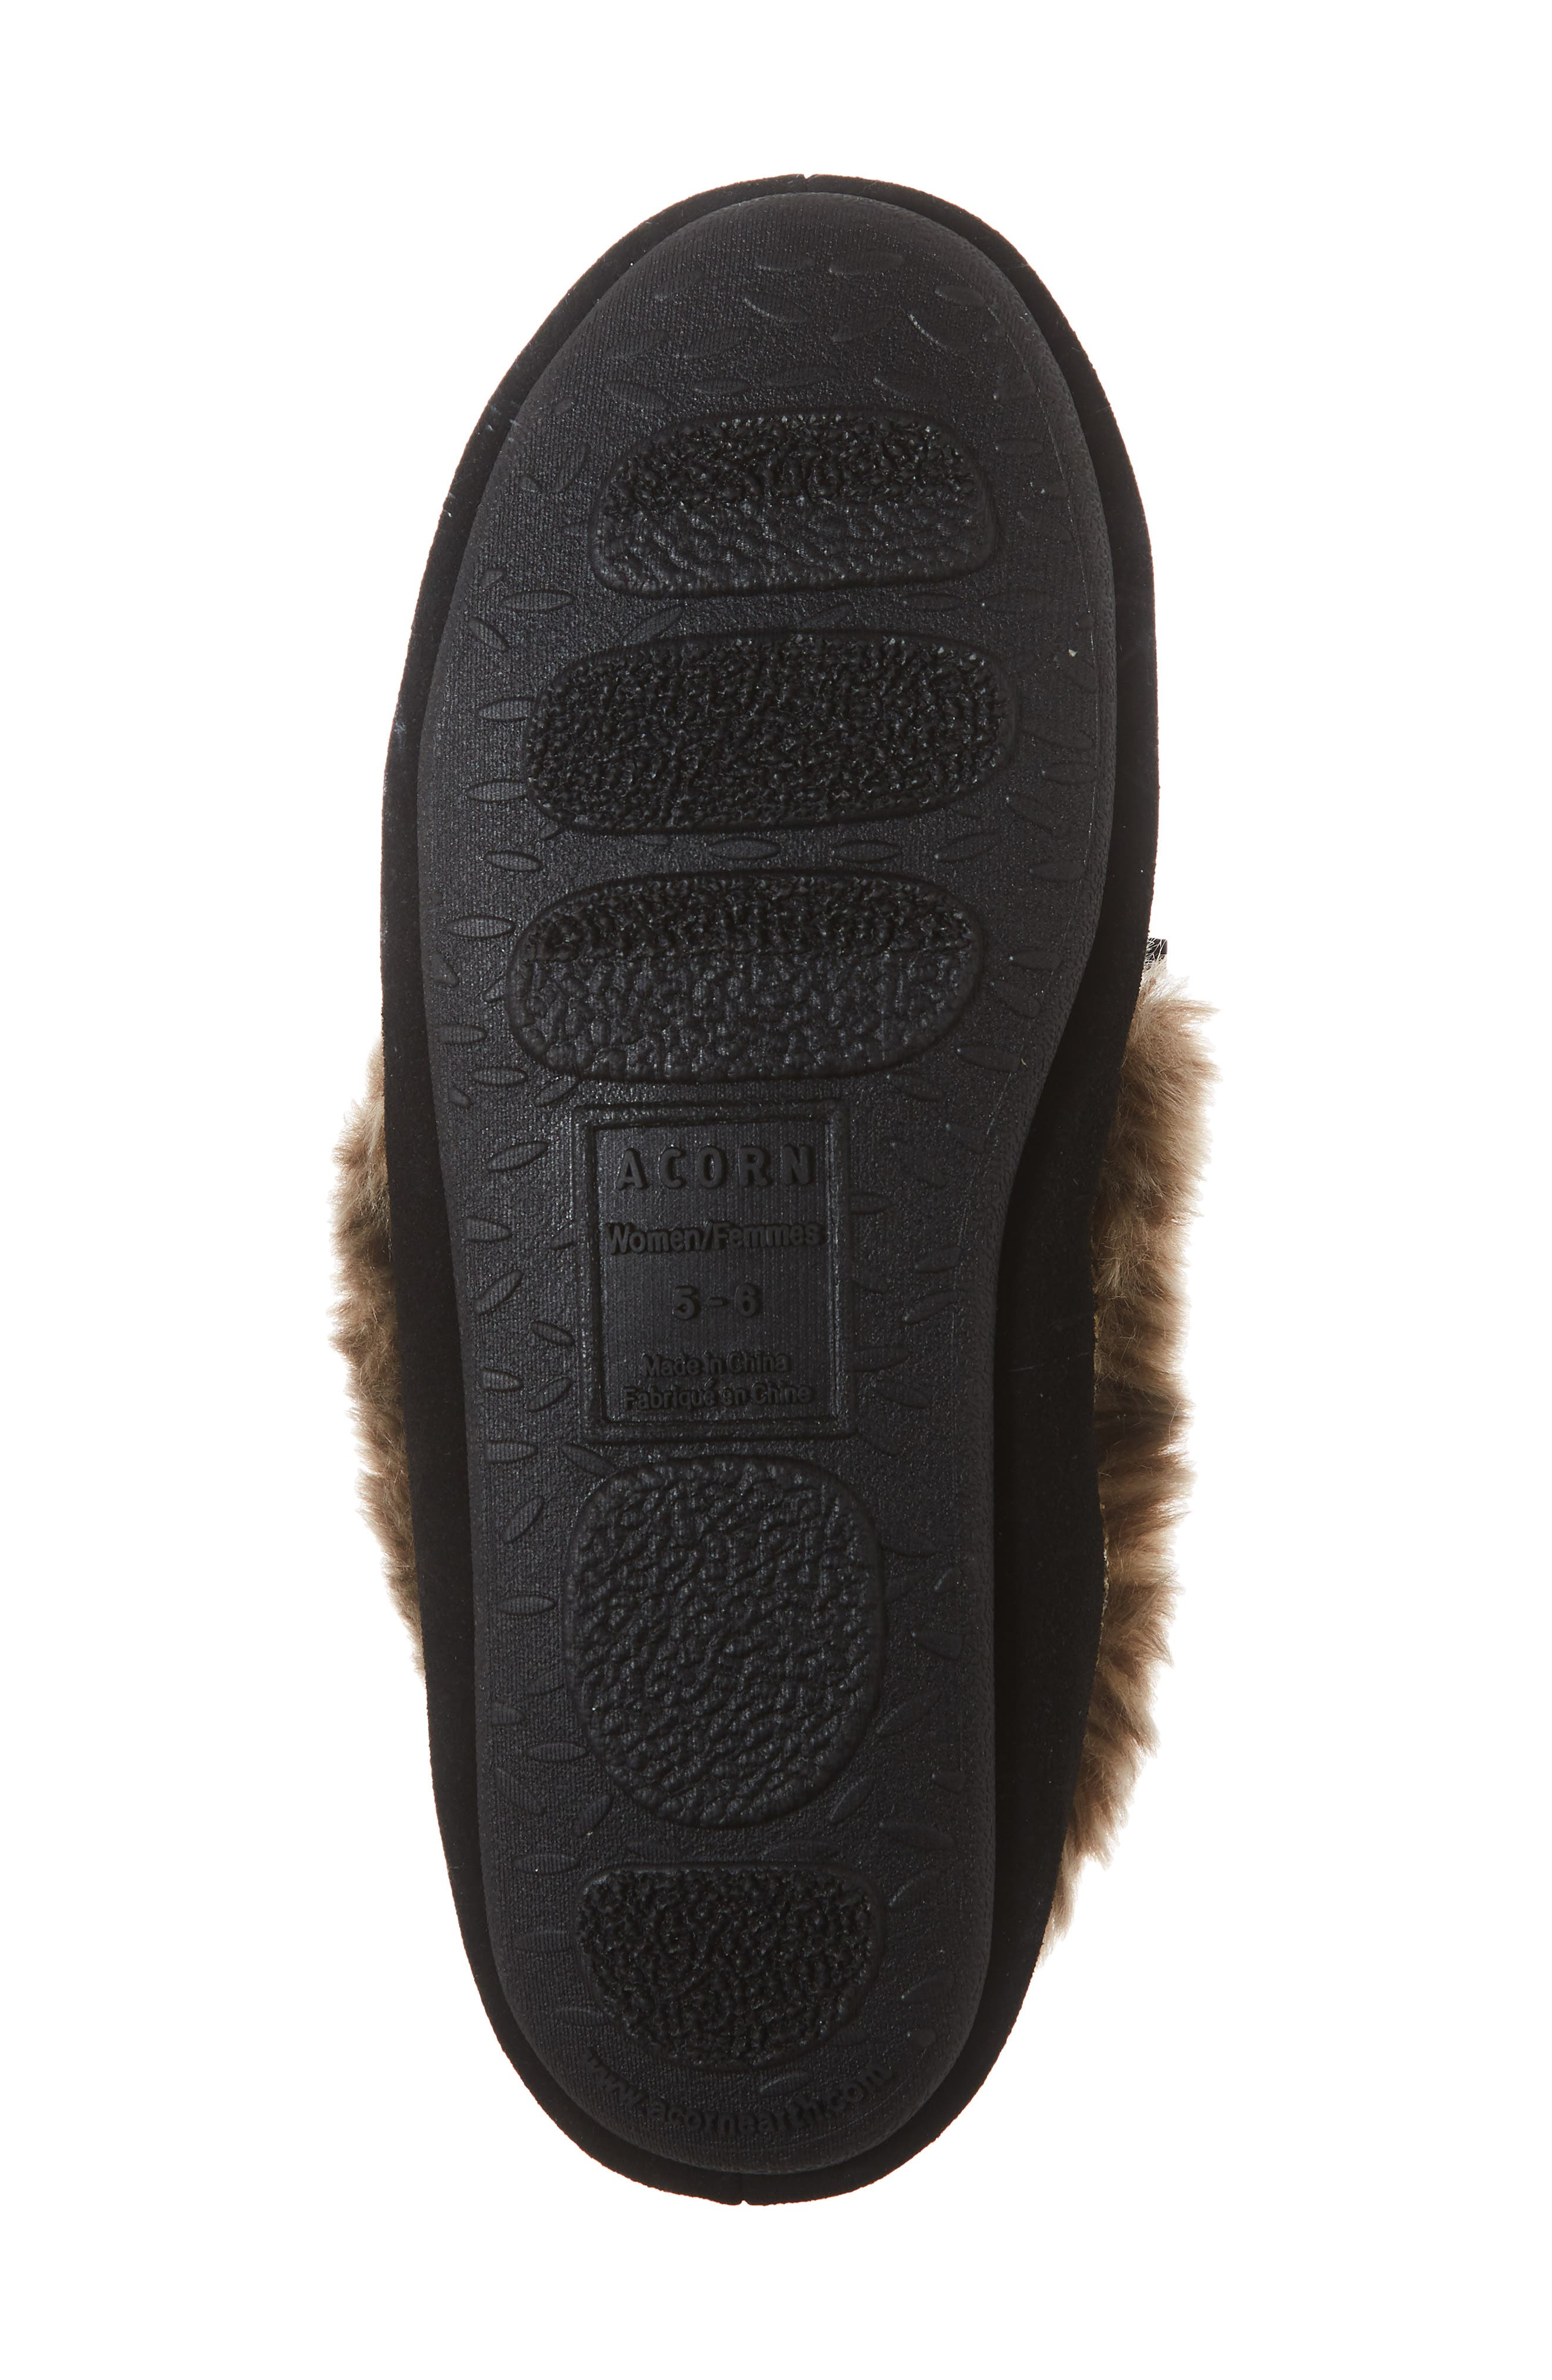 ACORN, Faux Fur Trim Moccasin Indoor/Outdoor Slipper, Alternate thumbnail 6, color, BLACK SUEDE